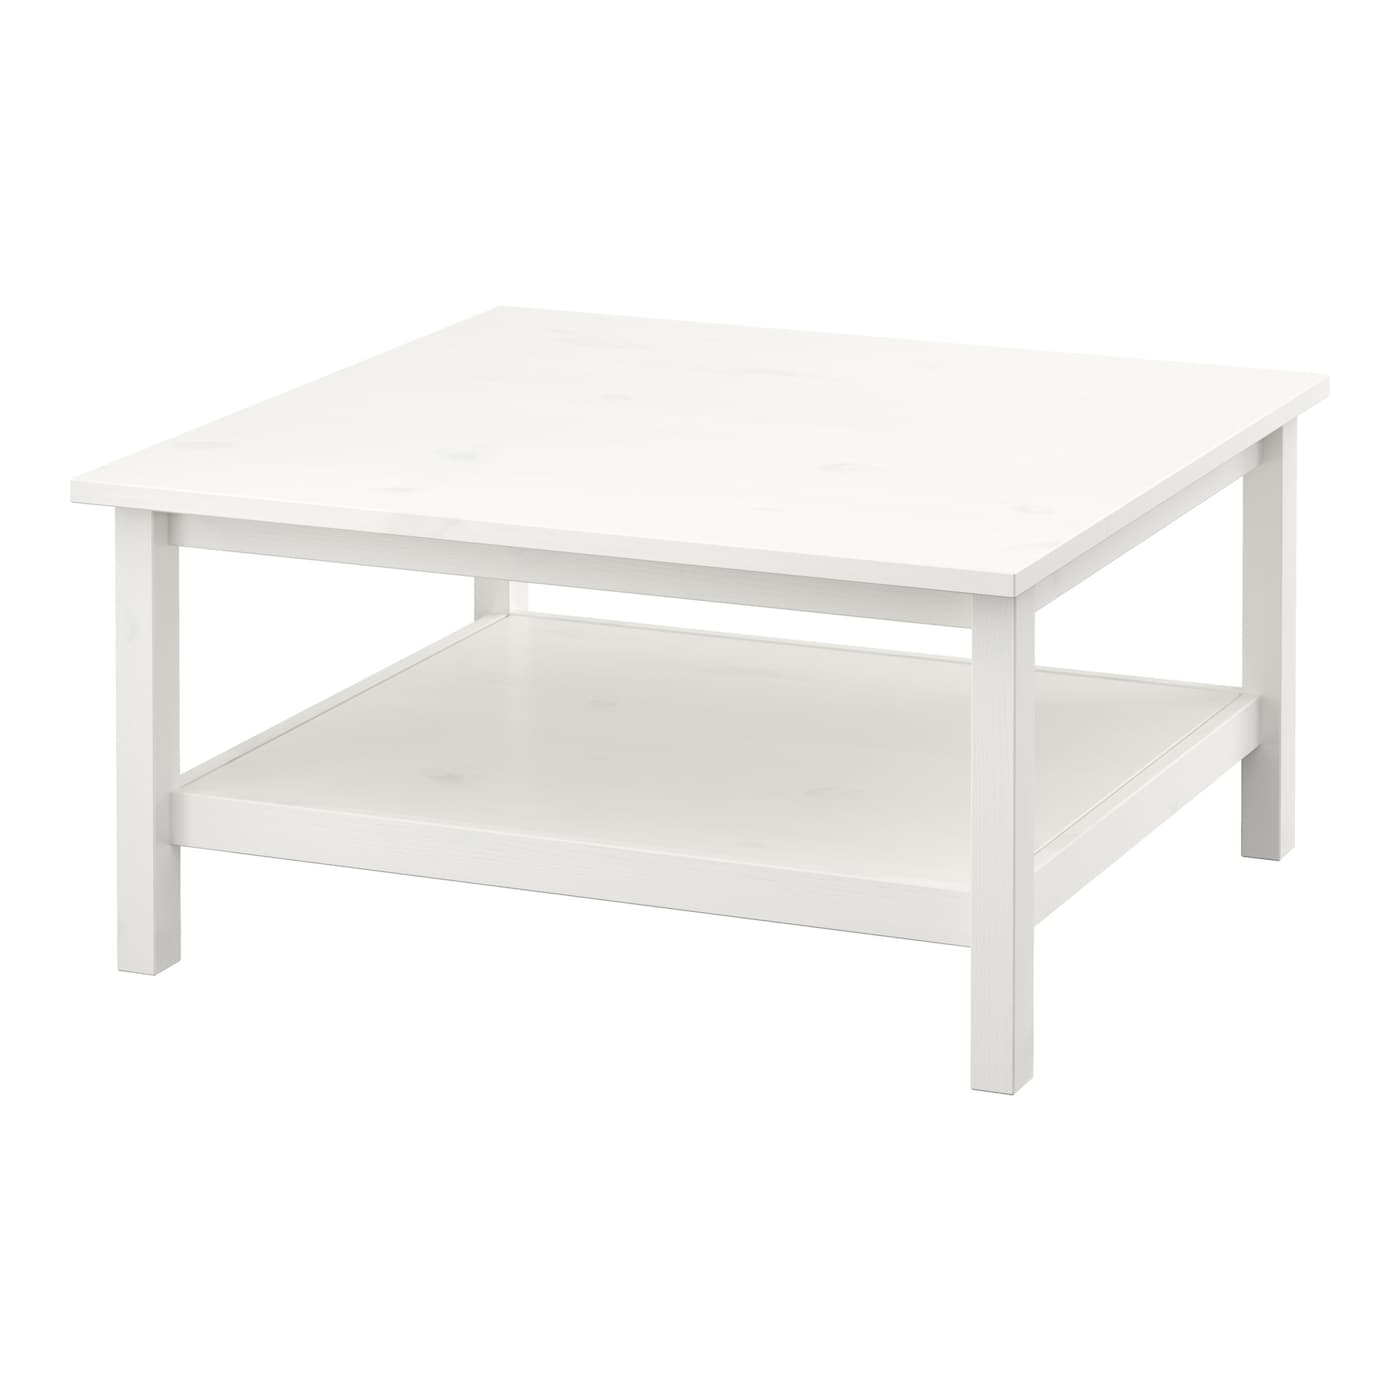 Hemnes coffee table white stain 90 x 90 cm ikea for Ikea comodino hemnes